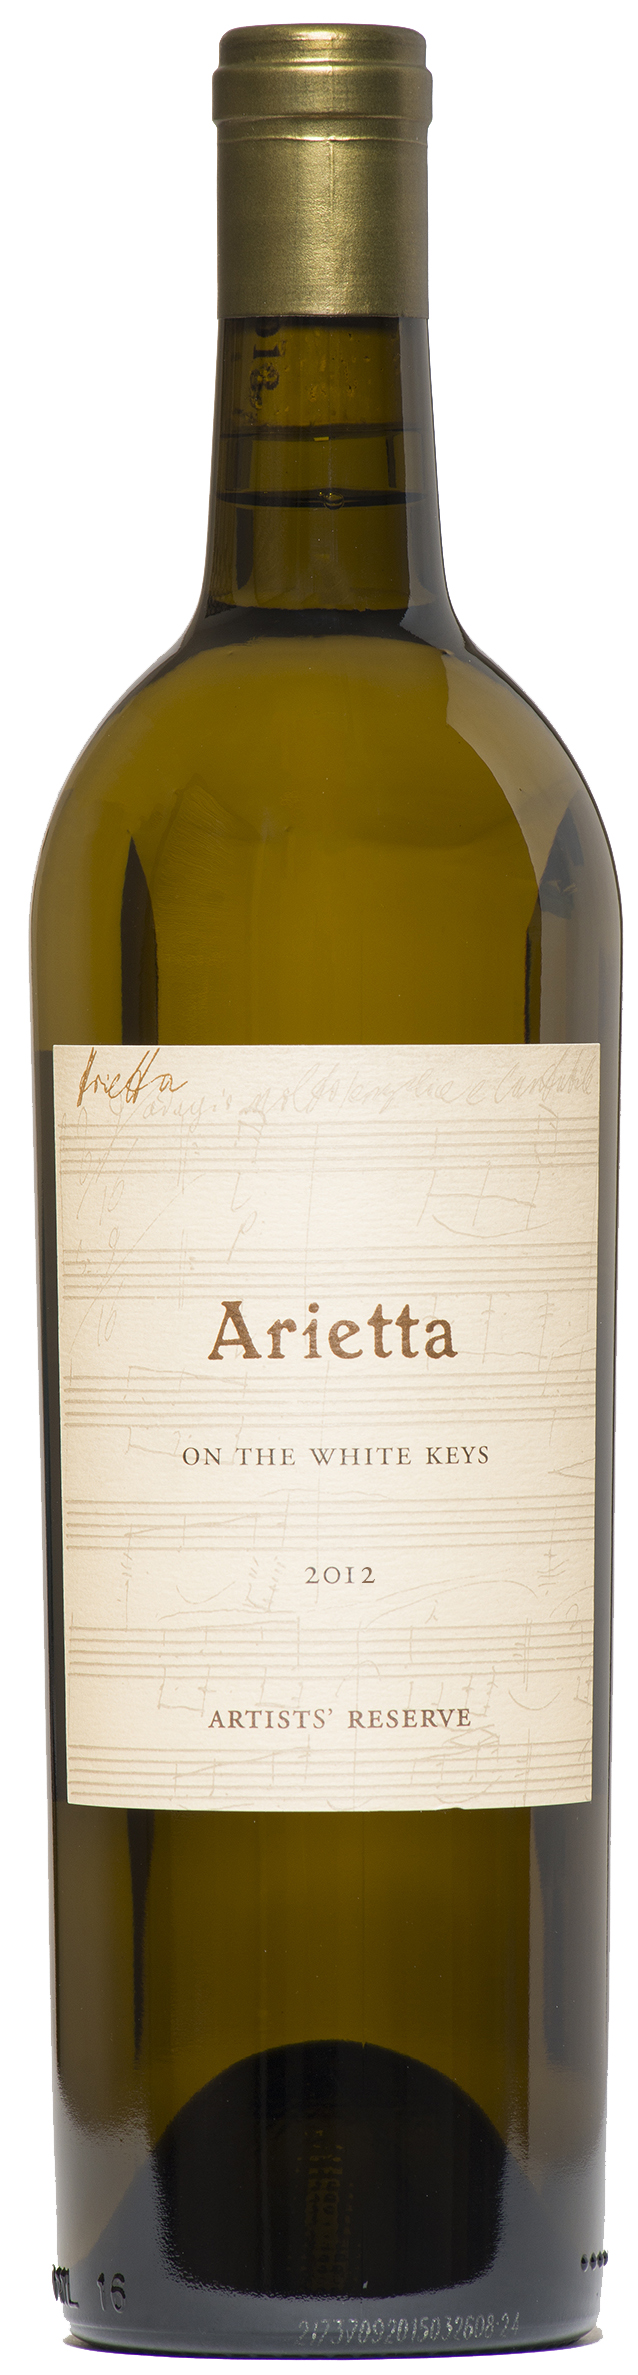 Arietta Artists Reserve 2012